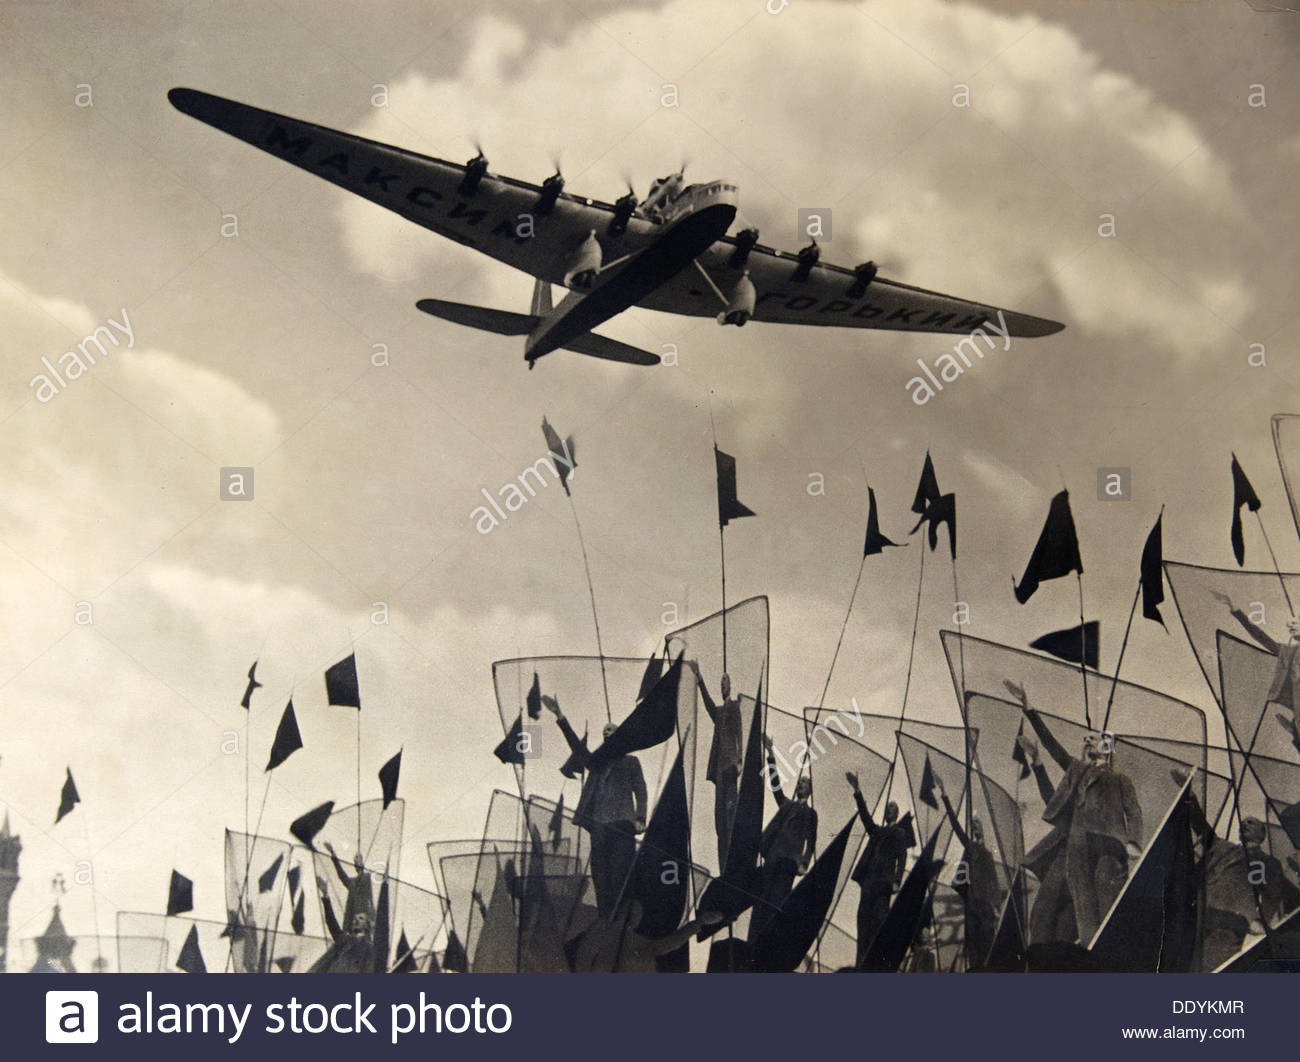 Air parade, 1930s. - Stock Image